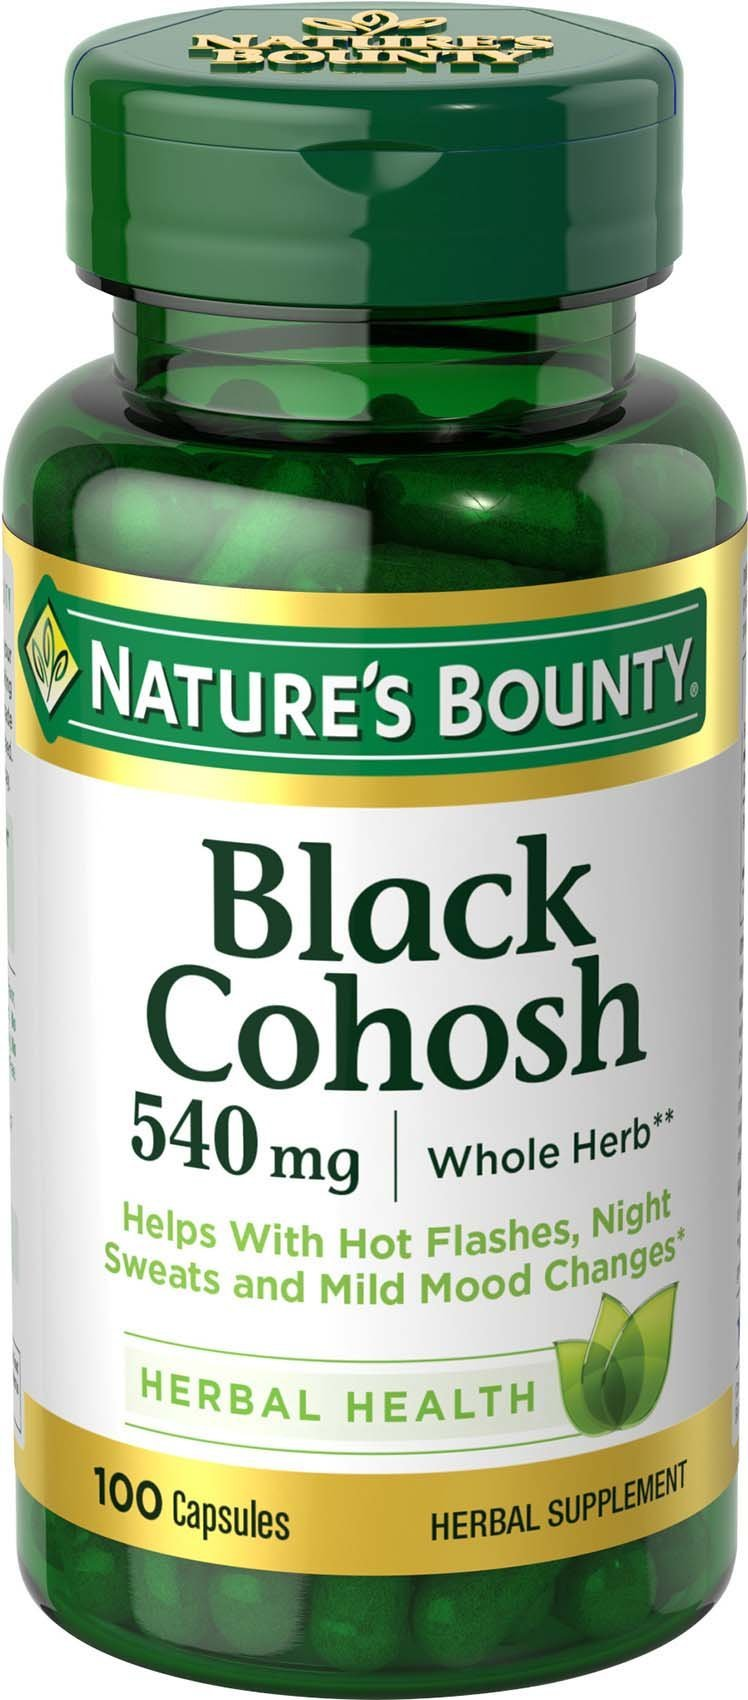 Nature's Bounty Black Cohosh Root Pills and Herbal Health Supplement, Natural Menopausal Support, 540 mg, 100 Capsules                Nature's Way Black Cohosh Root, 540 mg per serving, Non-GMO, Gluten Free, 180 Capsules                Nature's Way Standardized Black Cohosh, 2.5% Triterpene Glycosides per serving, 40 mg per serving, Non-GMO Project Verified, Gluten Free, Vegetarian, 120 Capsules                Estroven Menopause Relief + Mood Once-Daily Supplement - Helps Reduce Hot Flashes & Night Sweats - Helps Manage Mood Swings & Menopausal Anxiety - 30 Caplets